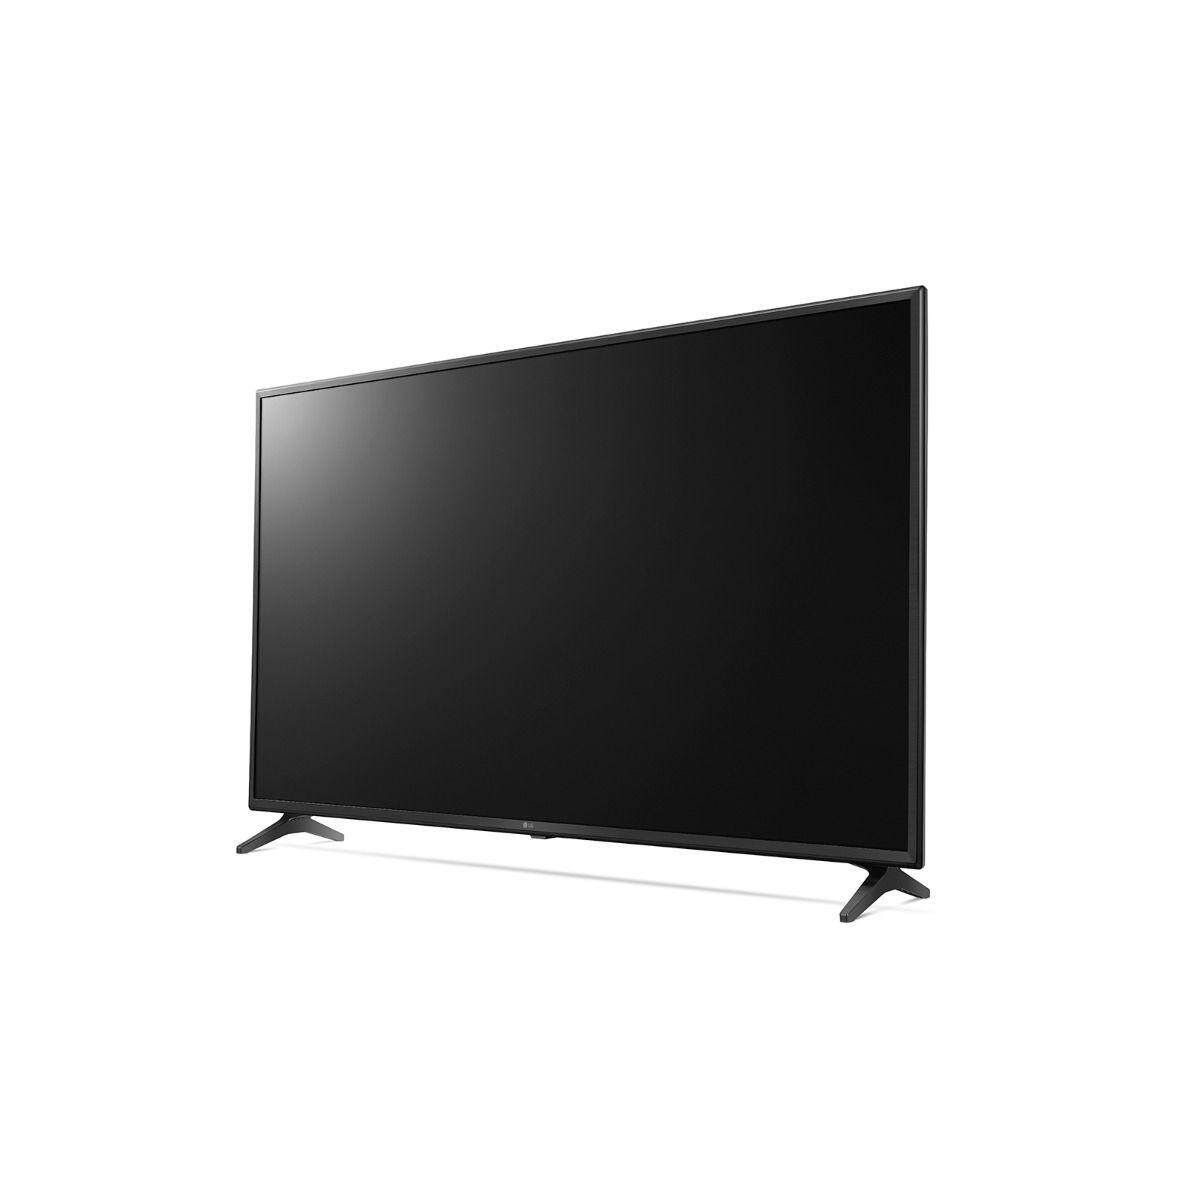 LG 60UM7100 60-Inch HDR Smart UHD TV with AI ThinQ